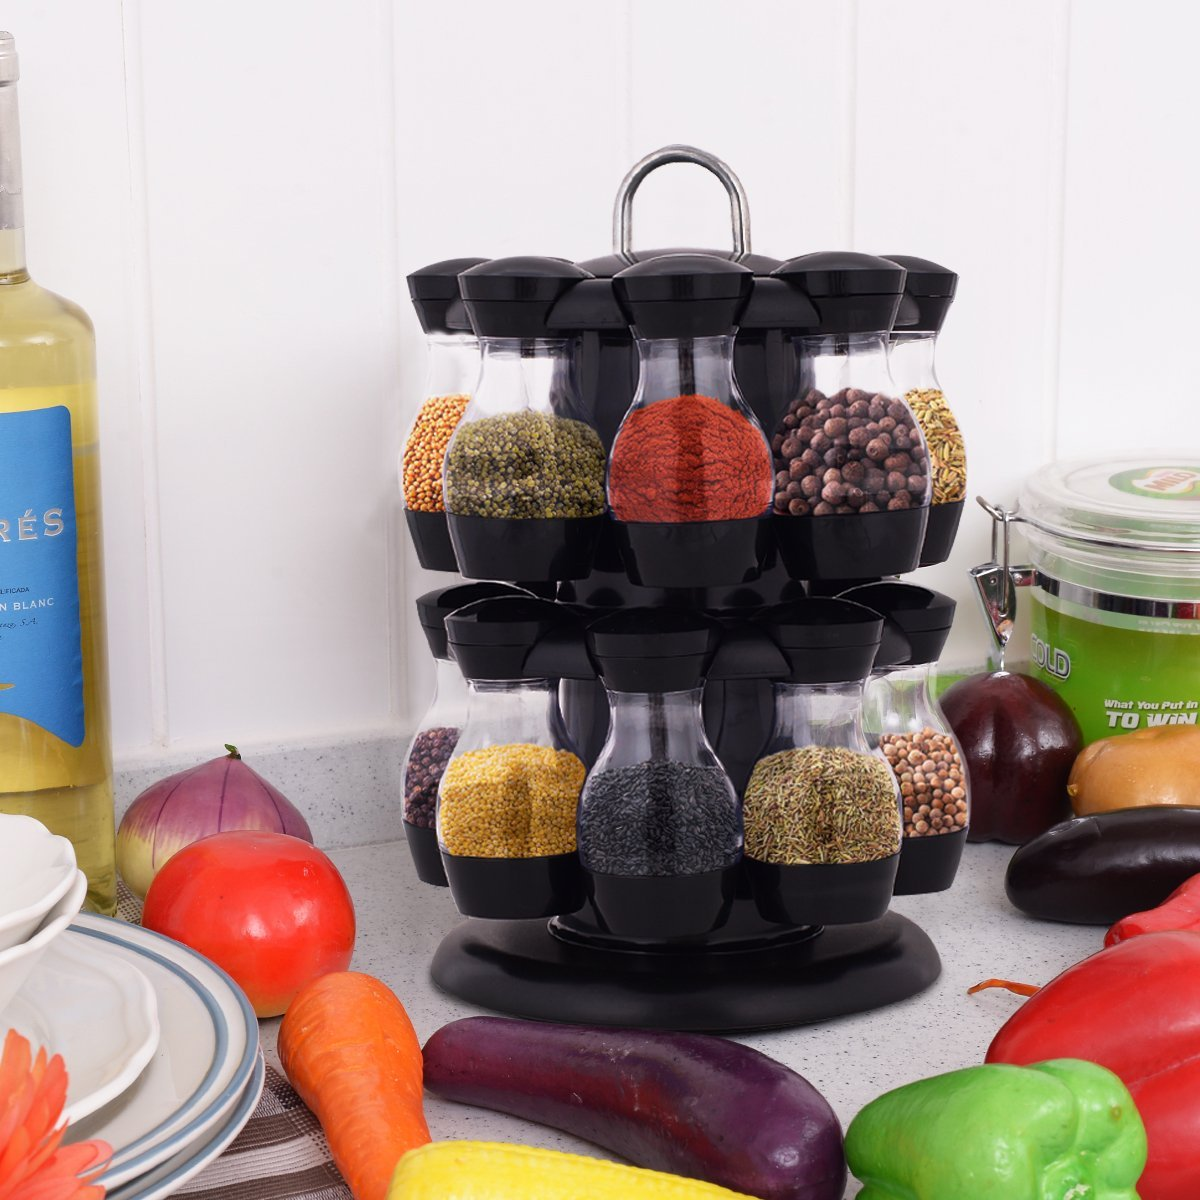 16 Jar Rotating Spice Rack Carousel Kitchen Storage Holder Condiments Container Transparent( body of jar) + Black - image 2 of 8